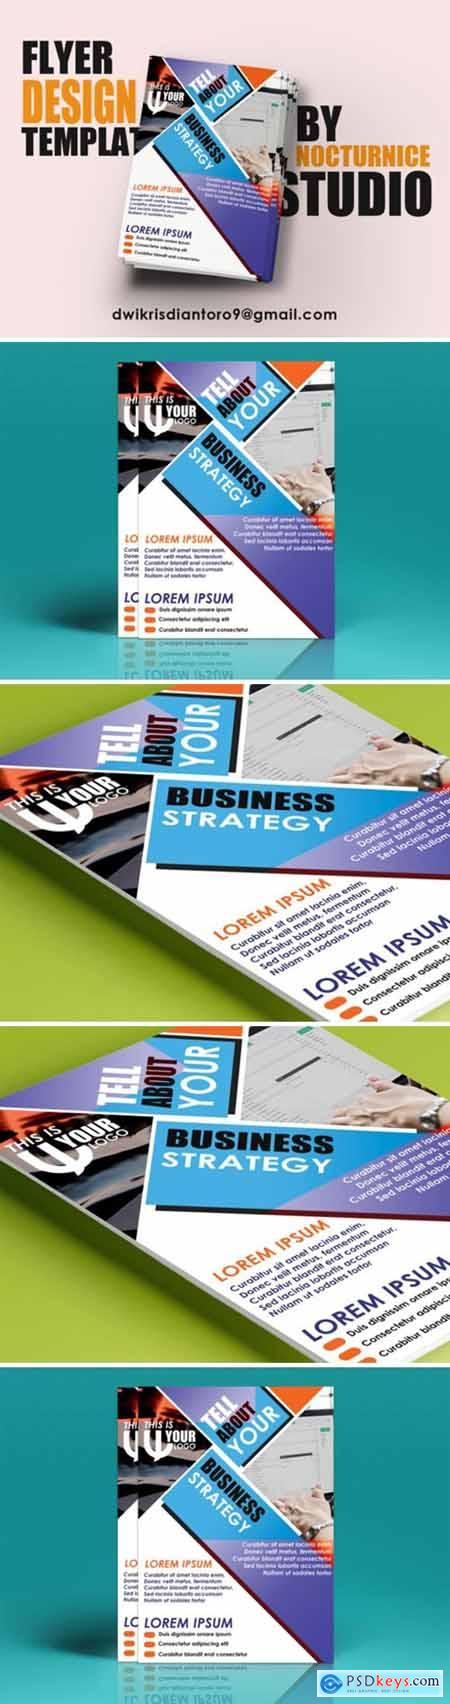 Business Strategy Flyer Template PSD